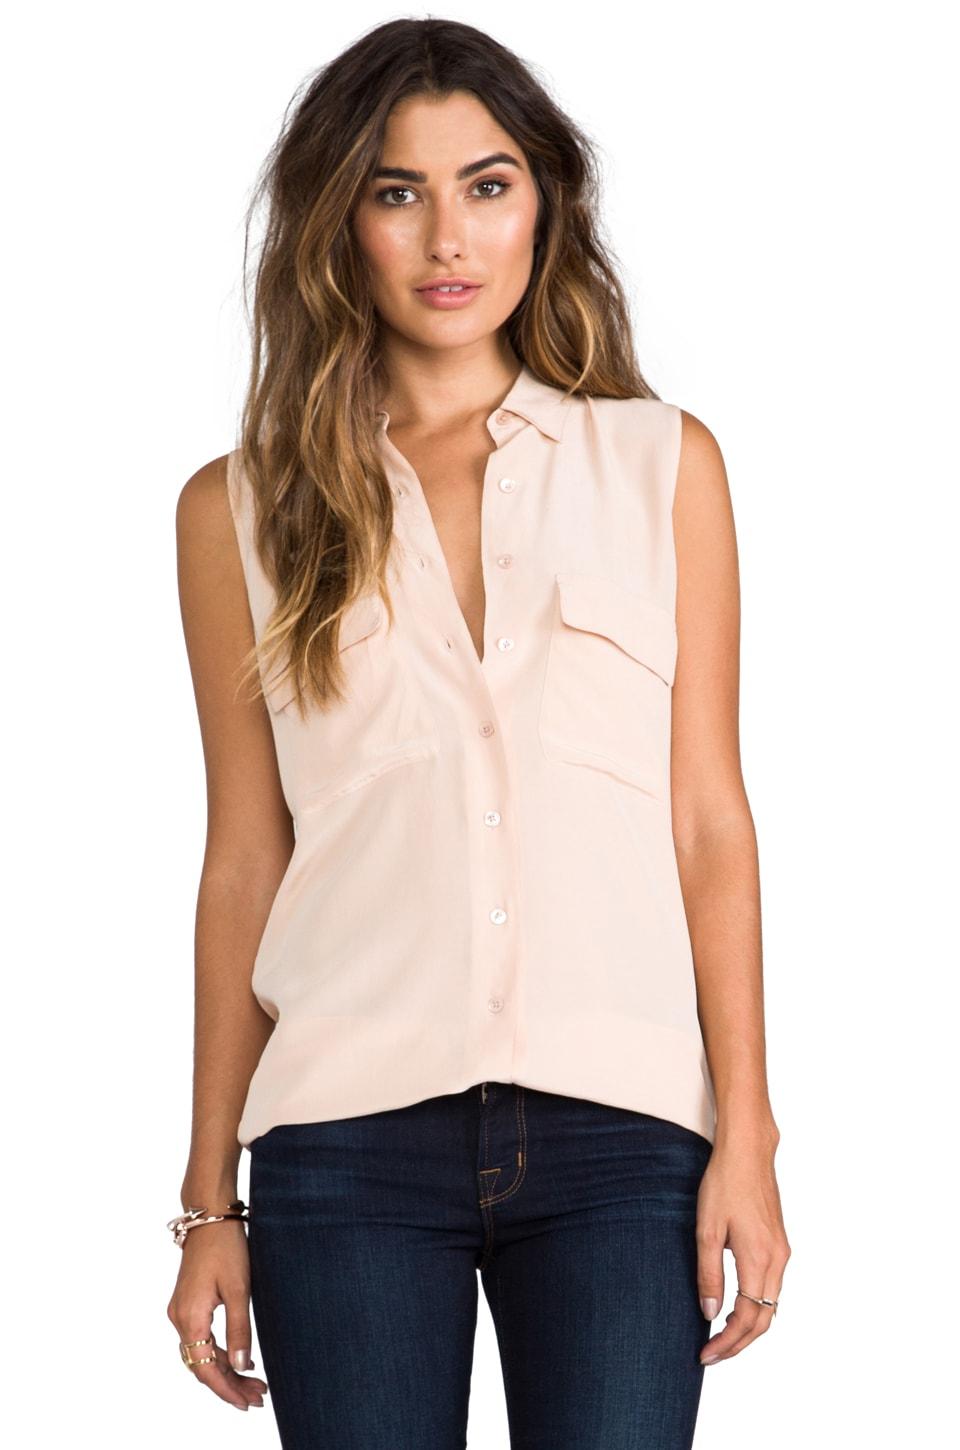 Equipment Sleeveless Signature Blouse in Nude